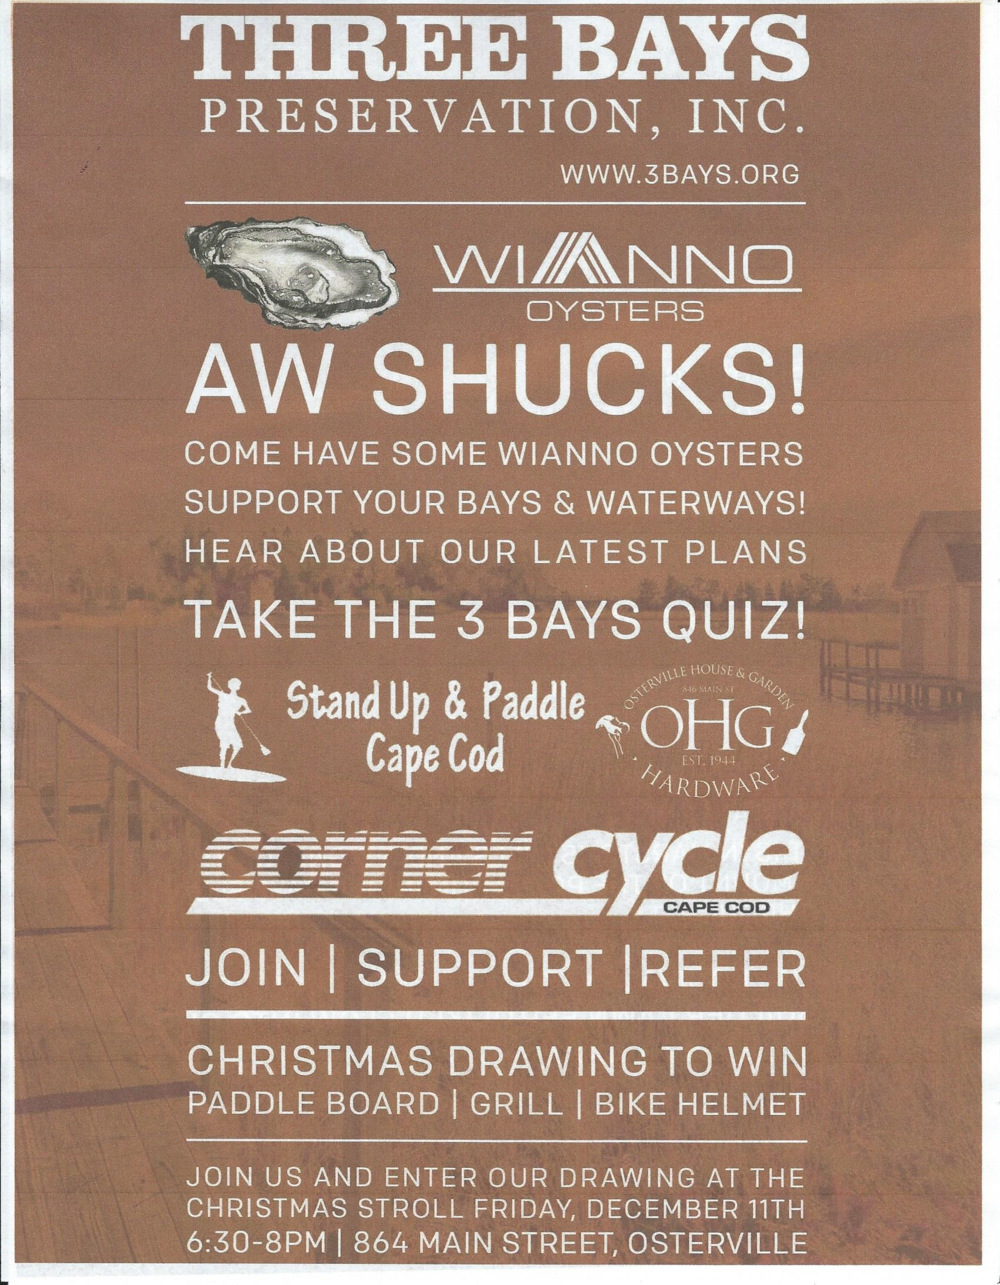 Join us on Friday, December 11th as we celebrate the Osterville Village Stroll.  Stop by for some free Wianno Oysters, take our quiz to see how much you really know about the waters of Cape Cod, and earn a chance to win a Stand Up Paddleboard from Stand Up and Paddle Cape Cod, a grill from Osterville House and Garden, or a bike helmet from Corner Cycle.  COME AND SEE WHAT WE'RE ALL ABOUT!!!